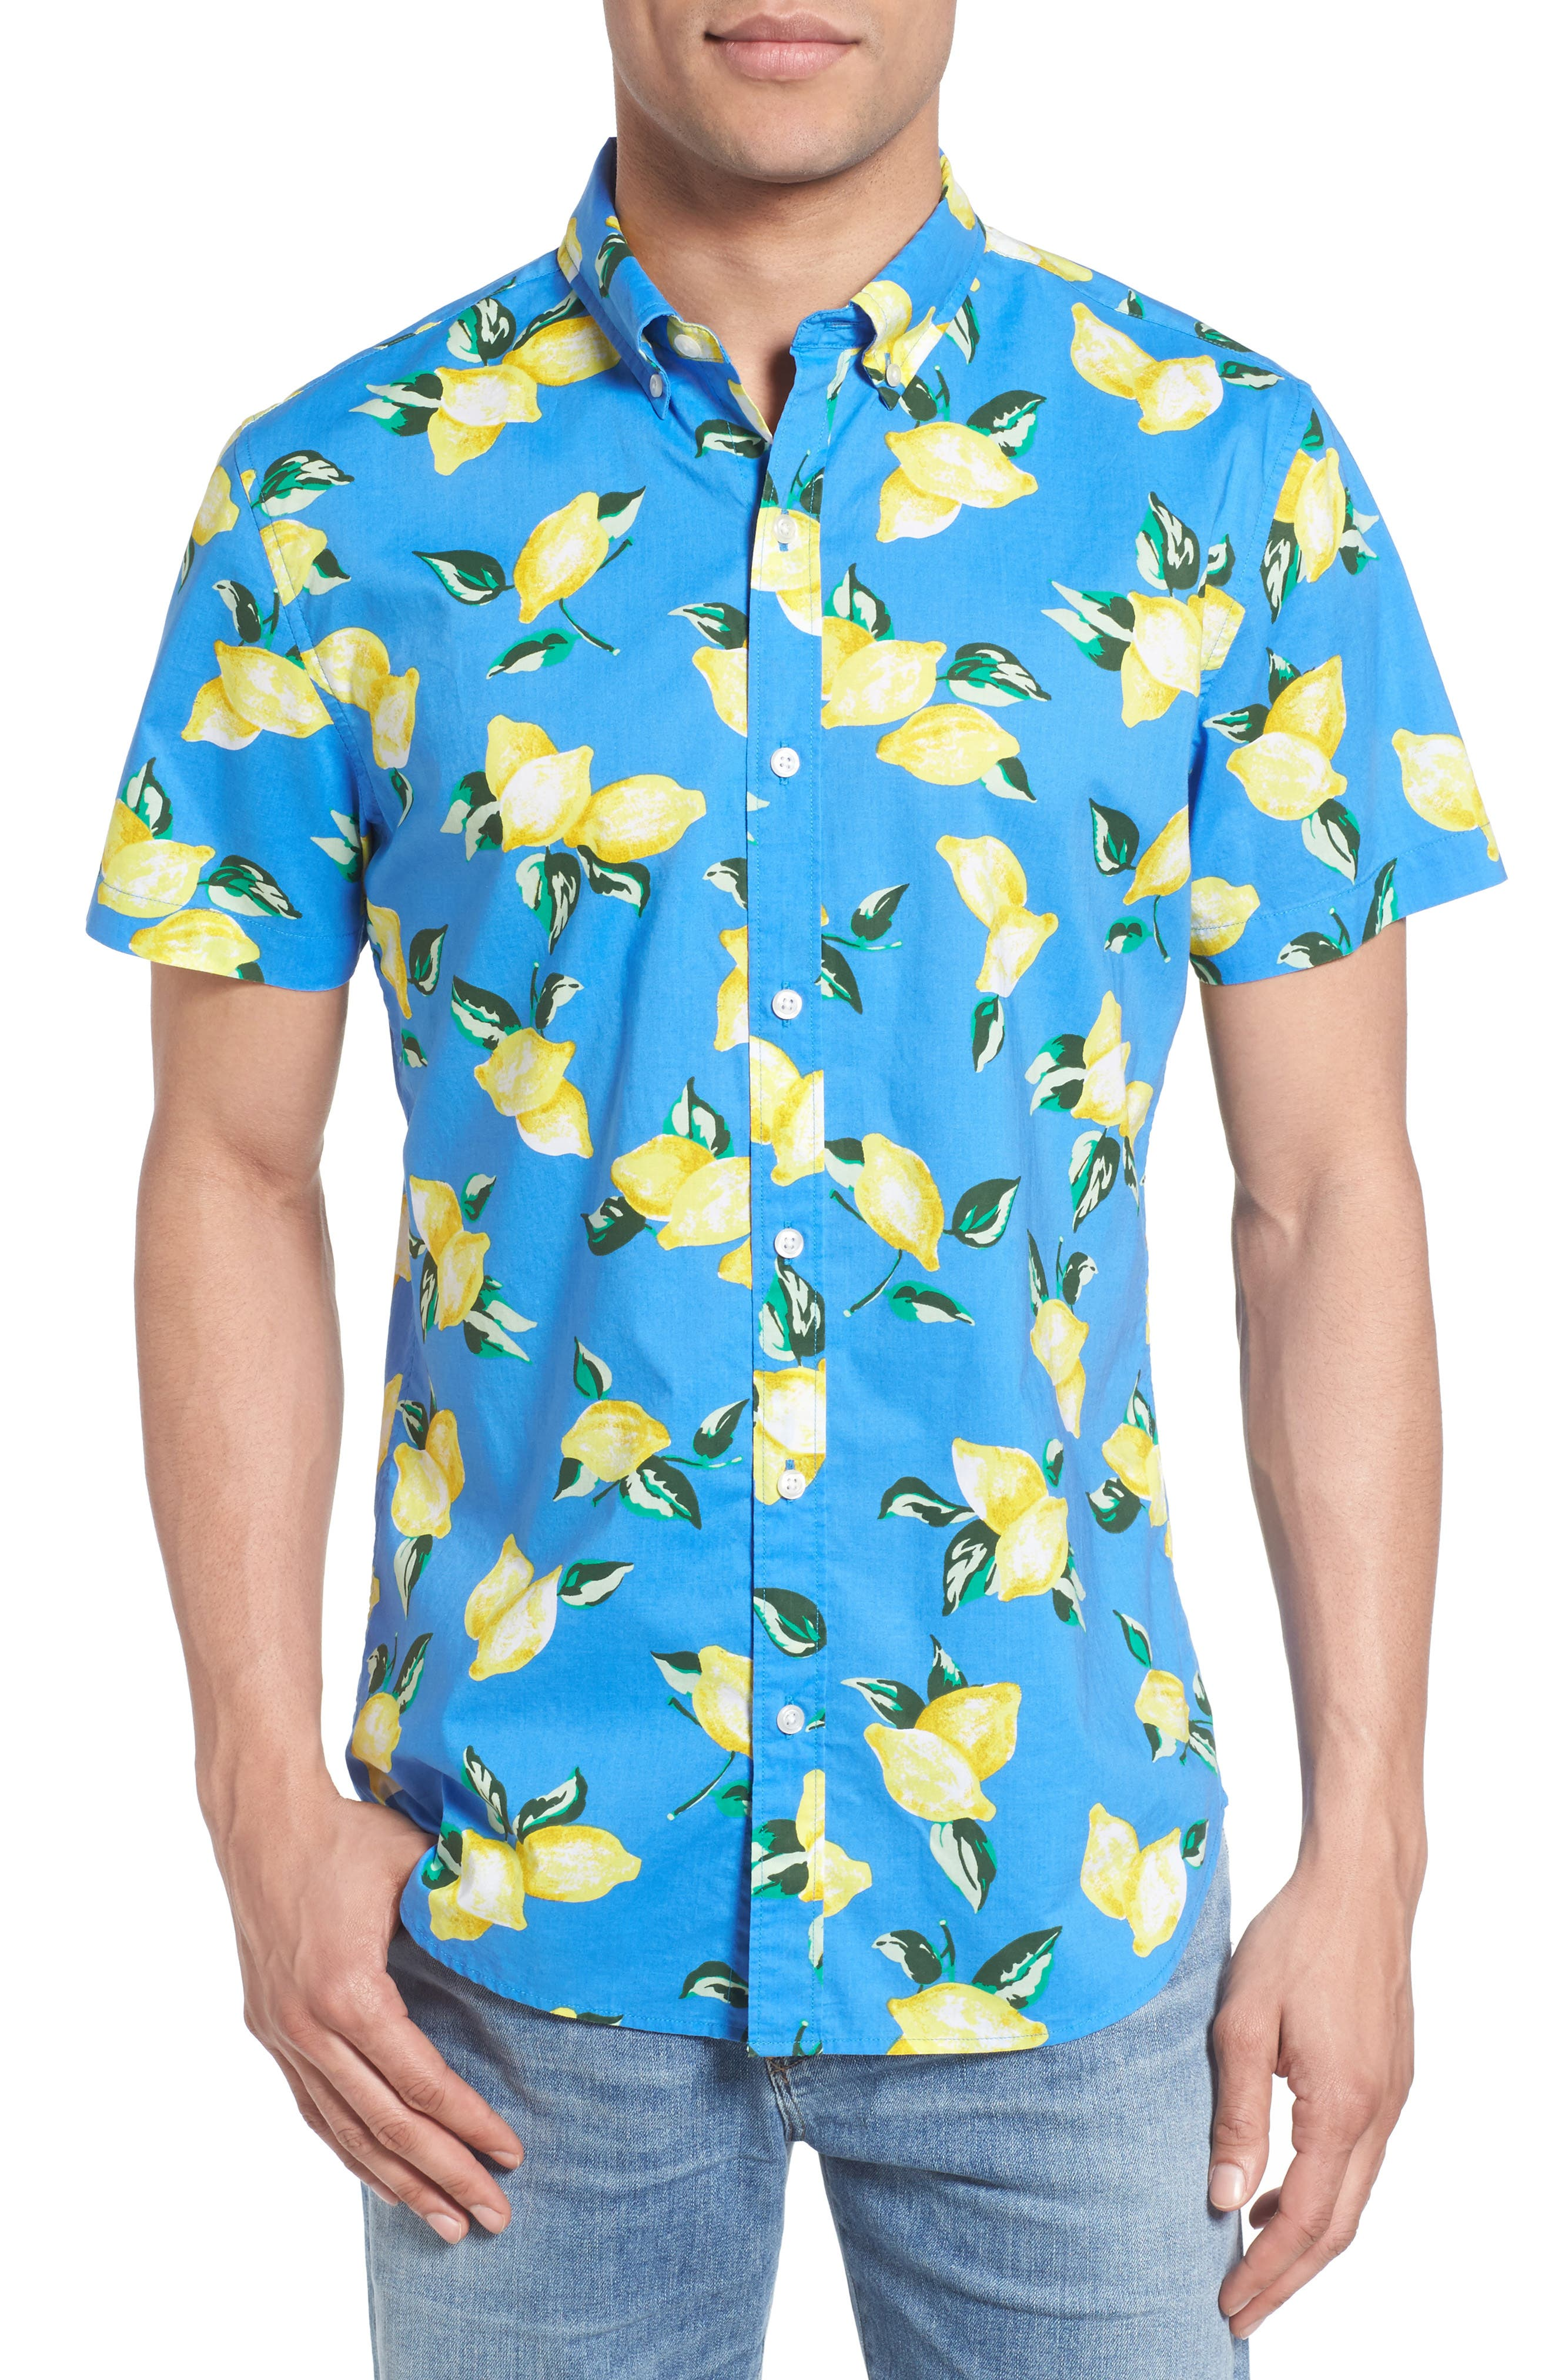 Bonobos Slim Fit Short Sleeve Lemon Print Sport Shirt